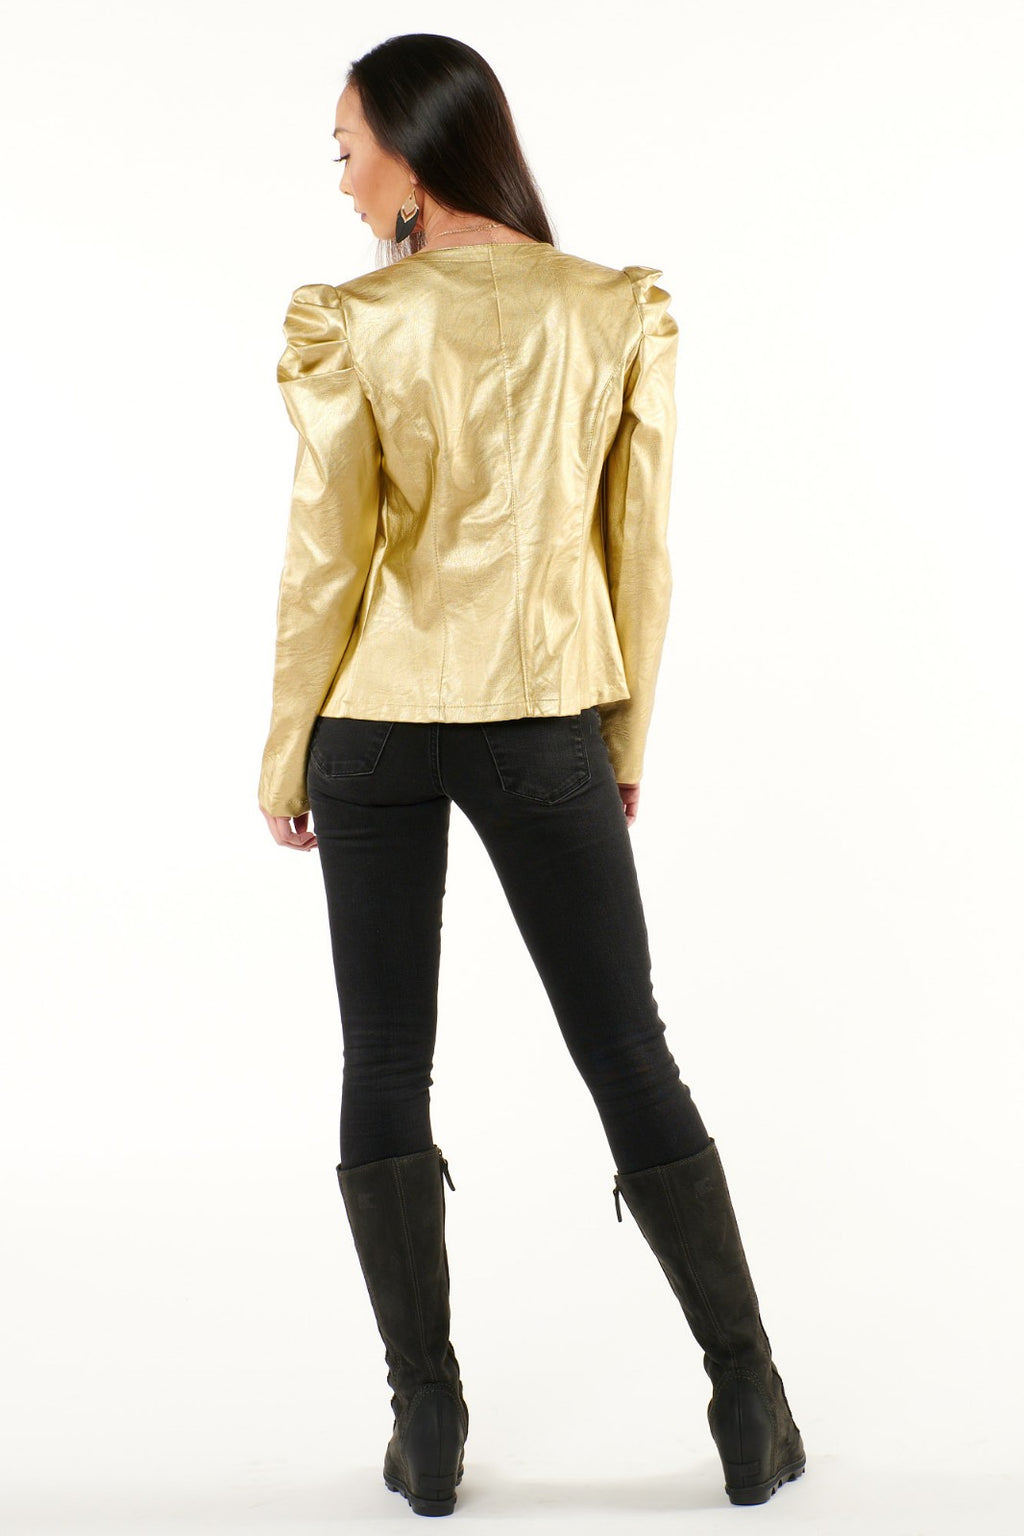 Solid Gold Pouf Shoulder Jacket